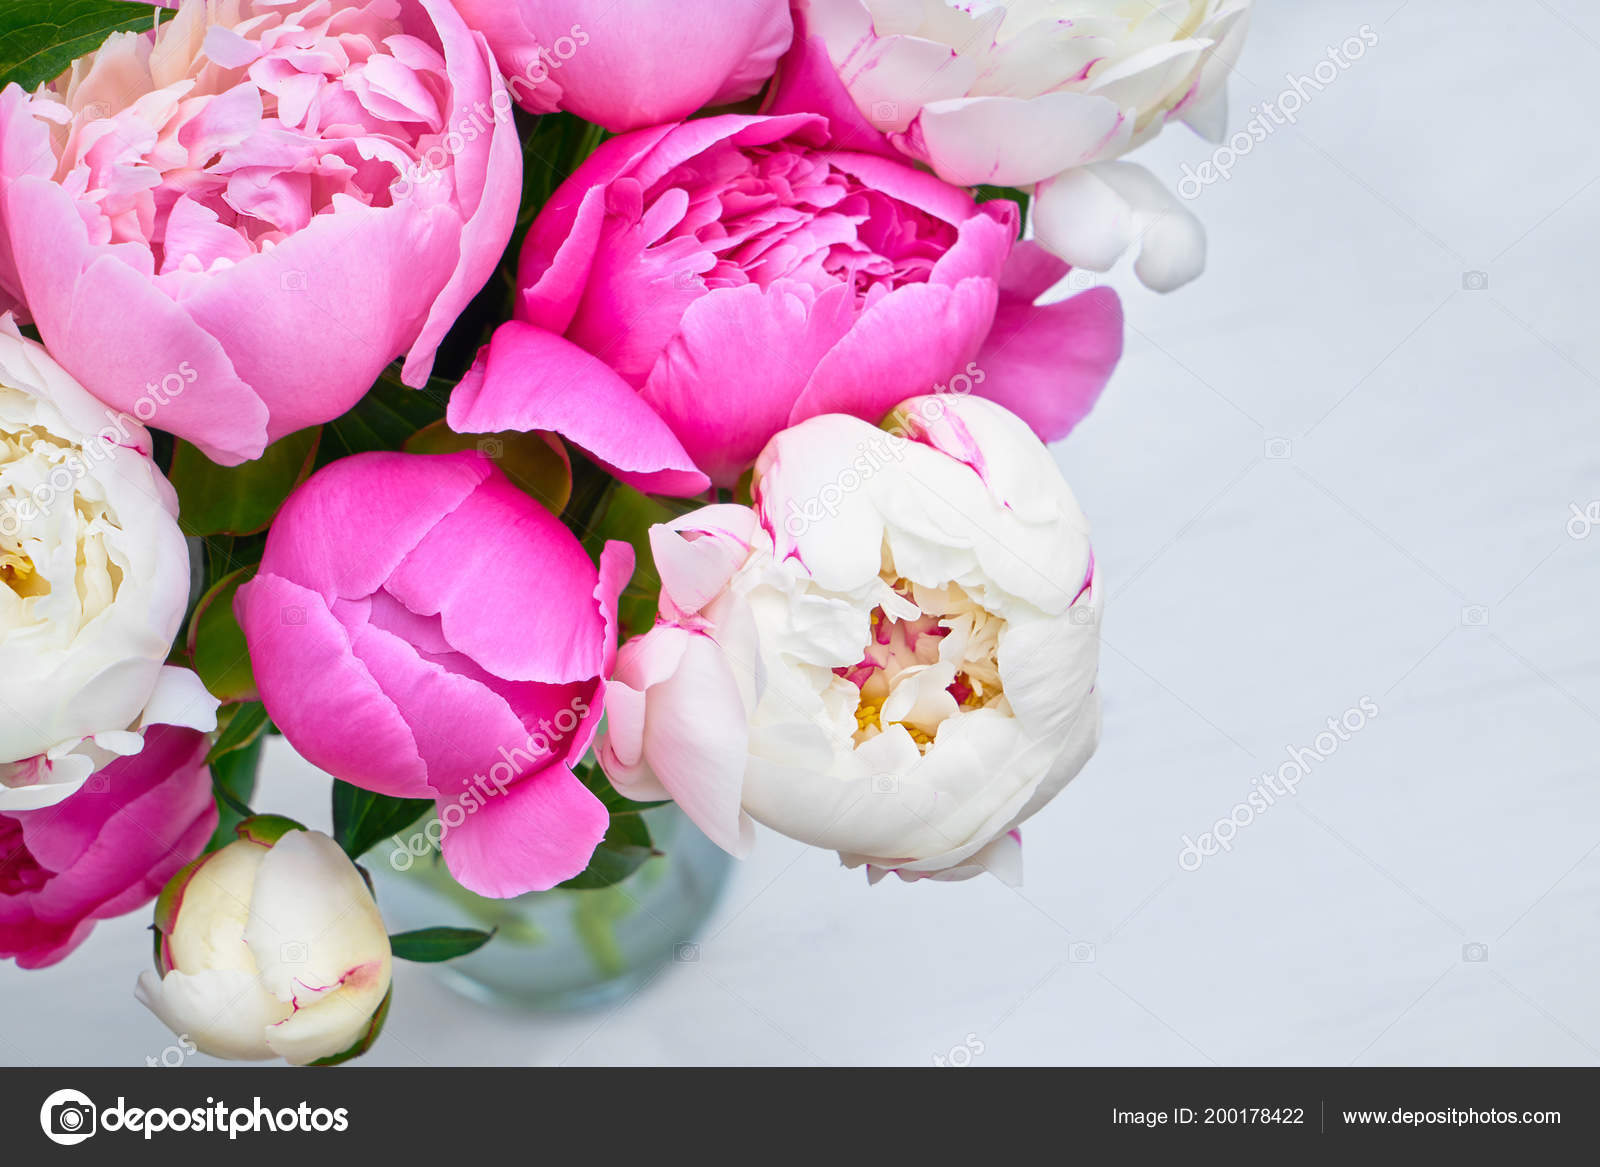 Bouquet Pink White Peony Flowers Background Top View Copy Space Stock Photo C Laima Gri 200178422